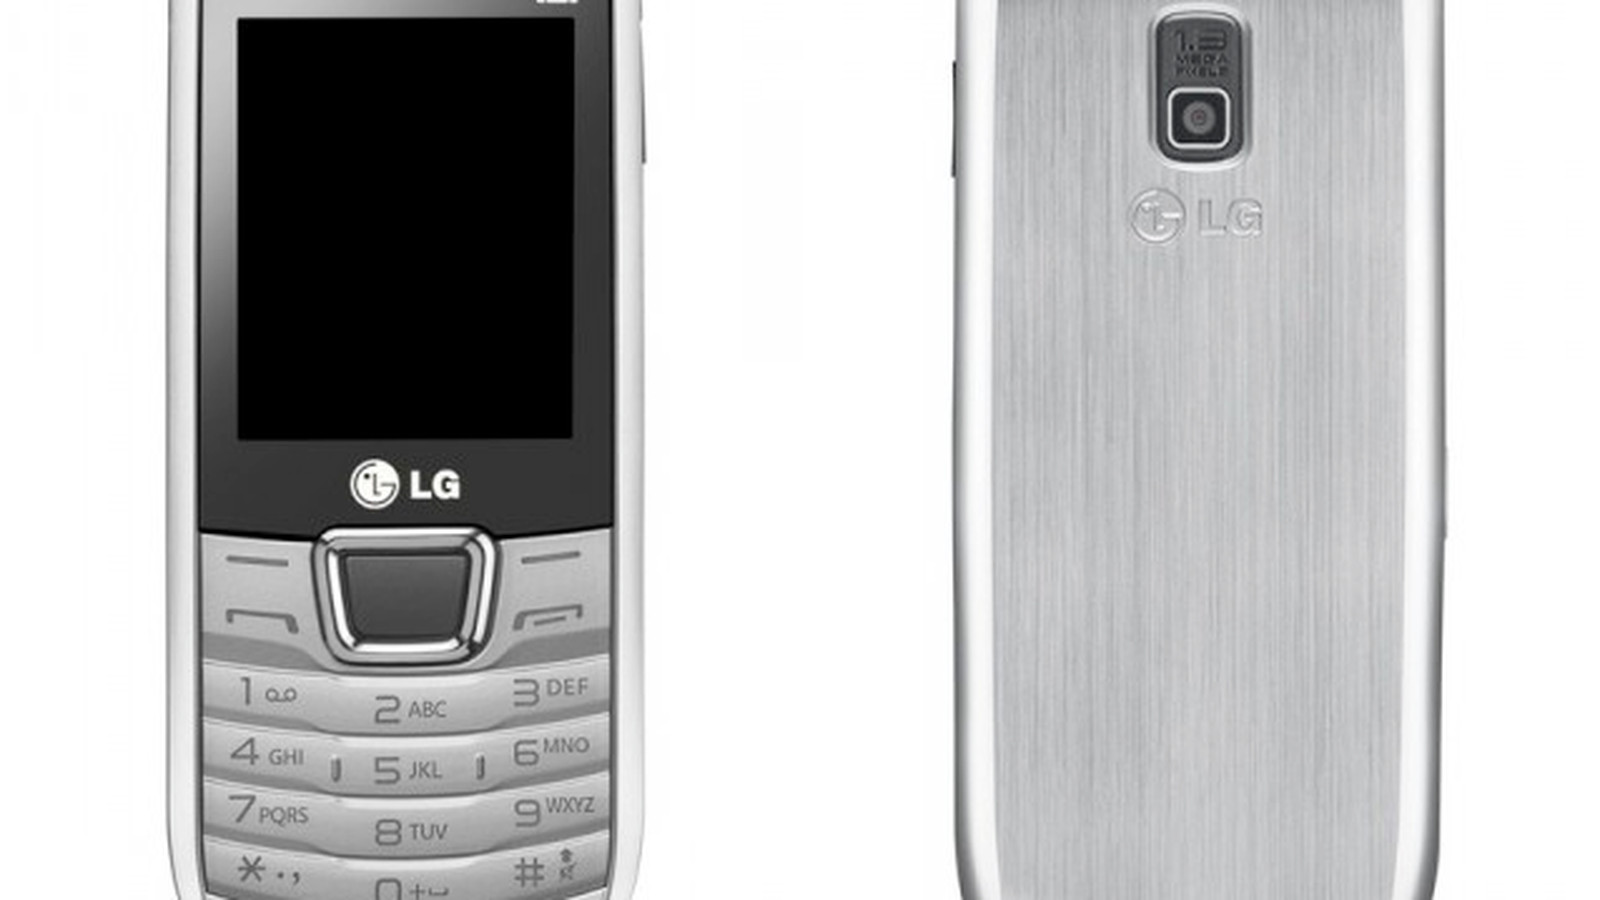 LG's triple-SIM card A290 launches in Russia this February ...